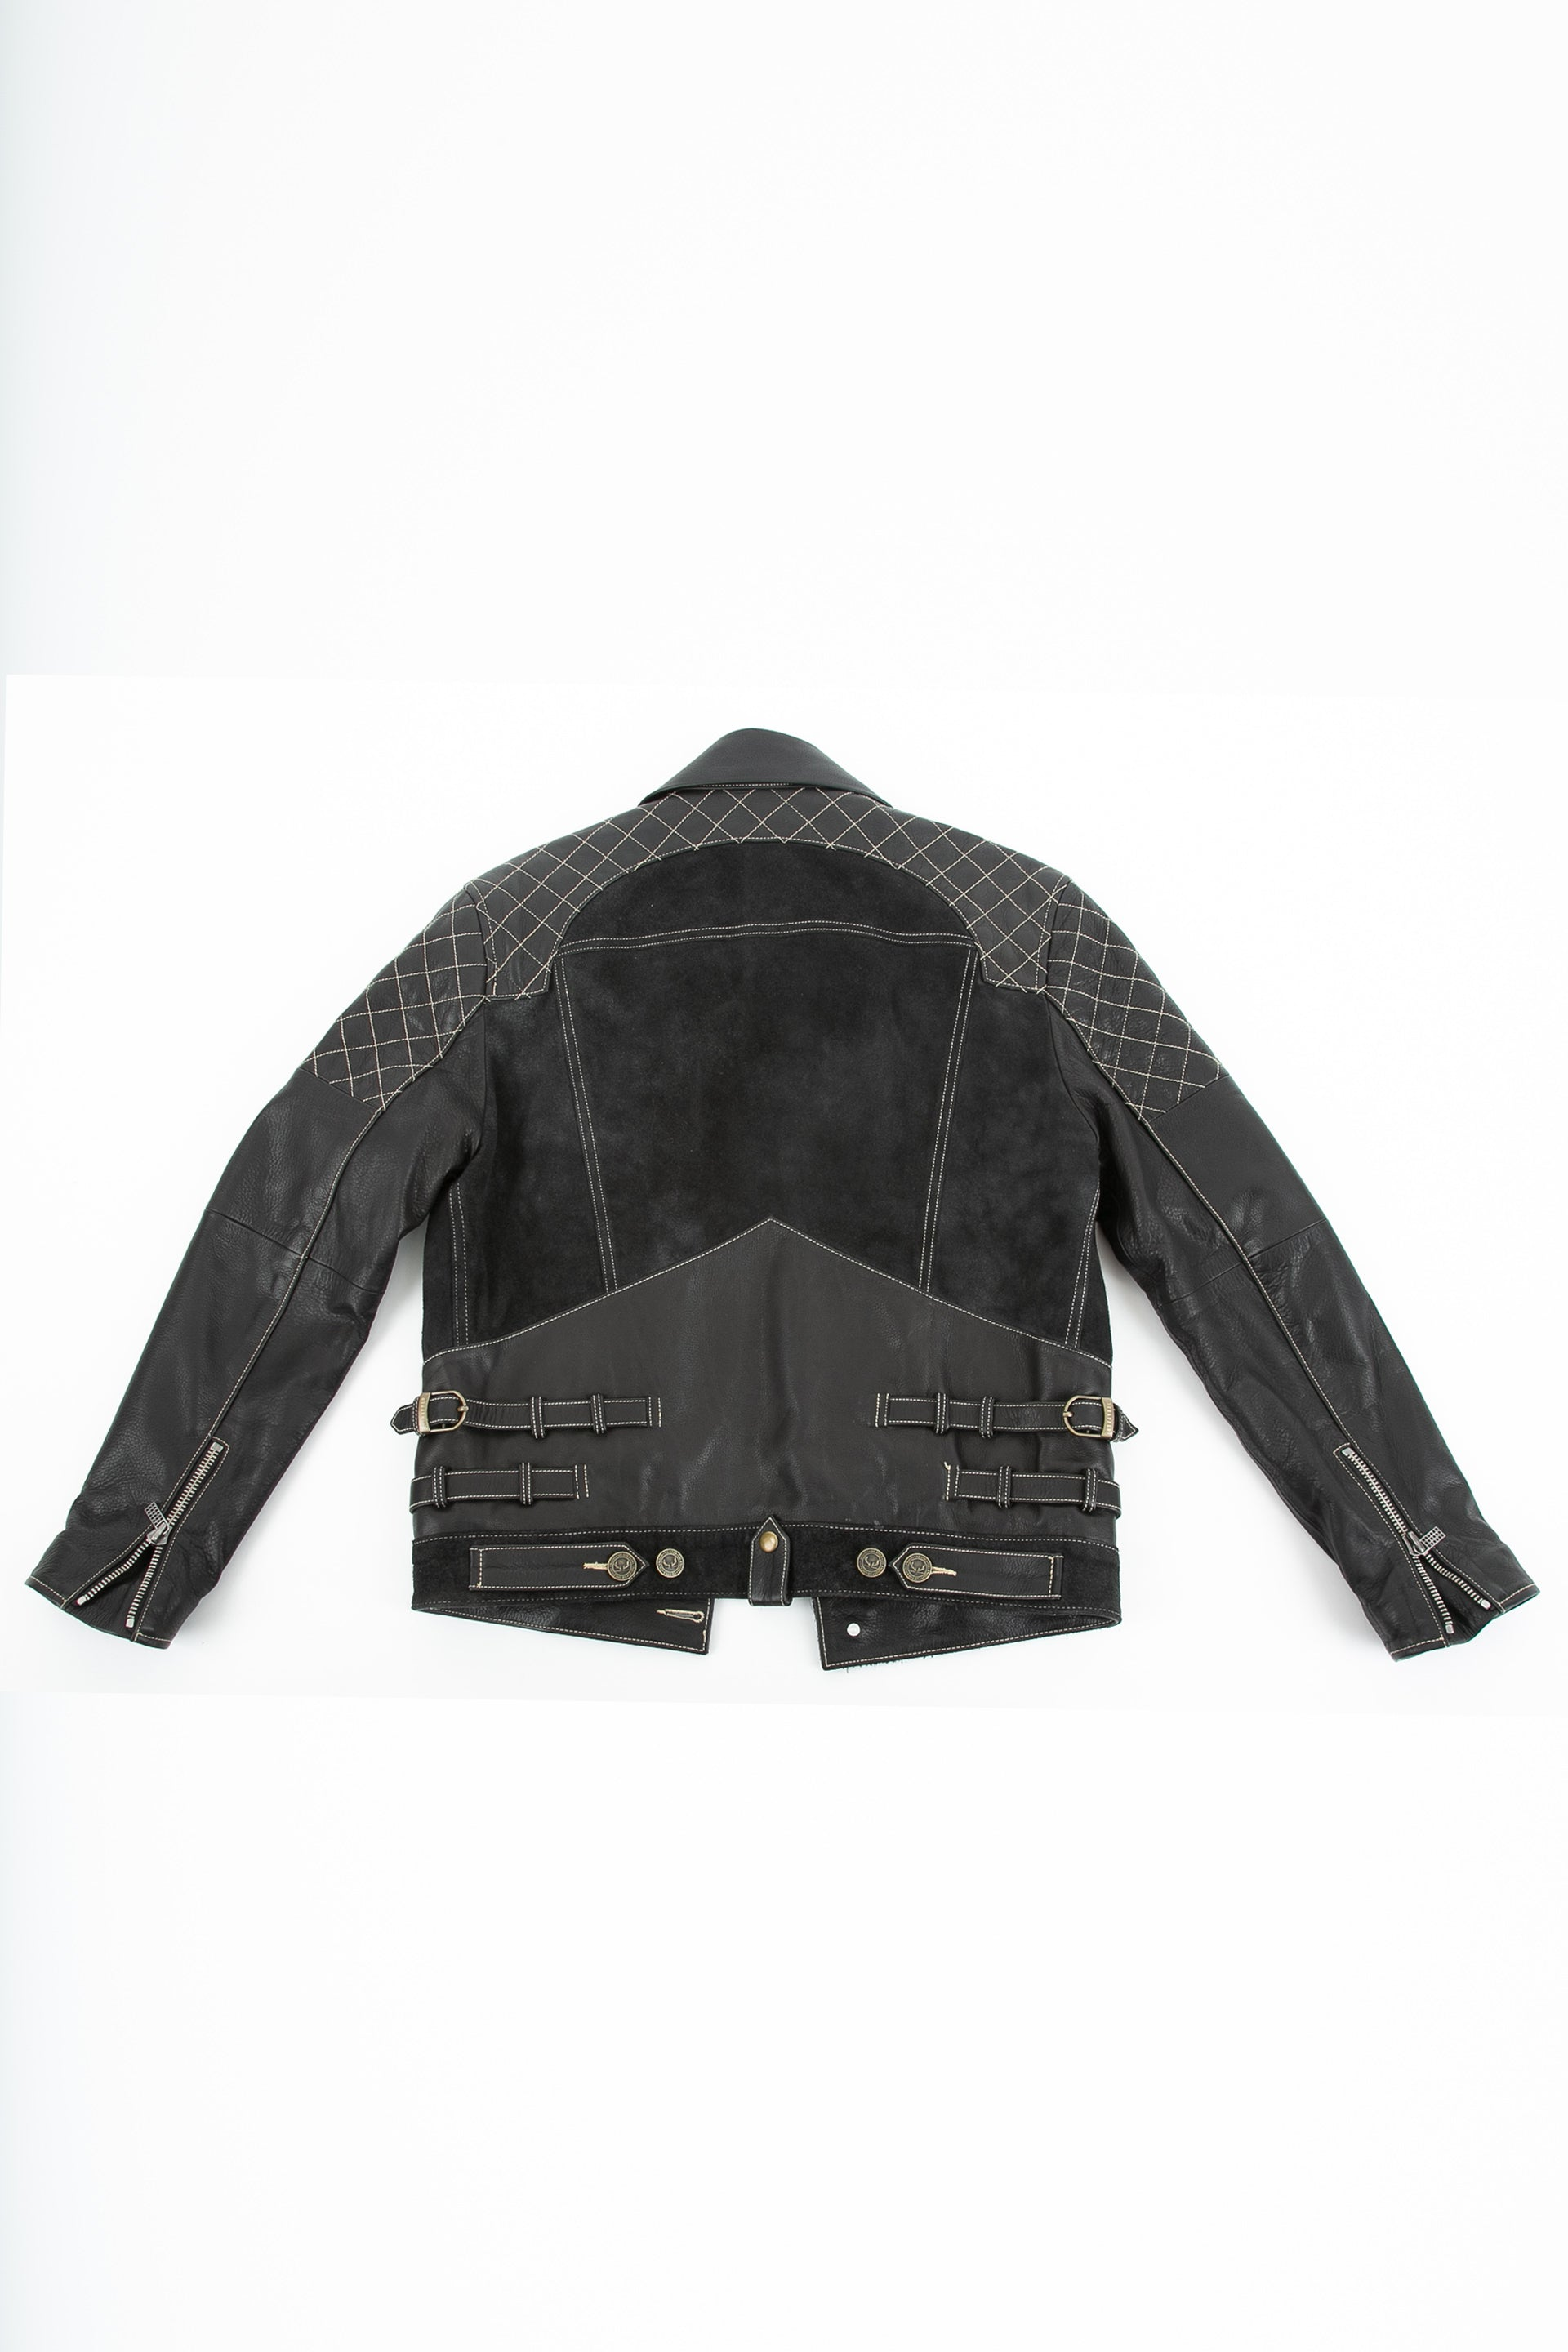 Backside of Emperor leather jacket